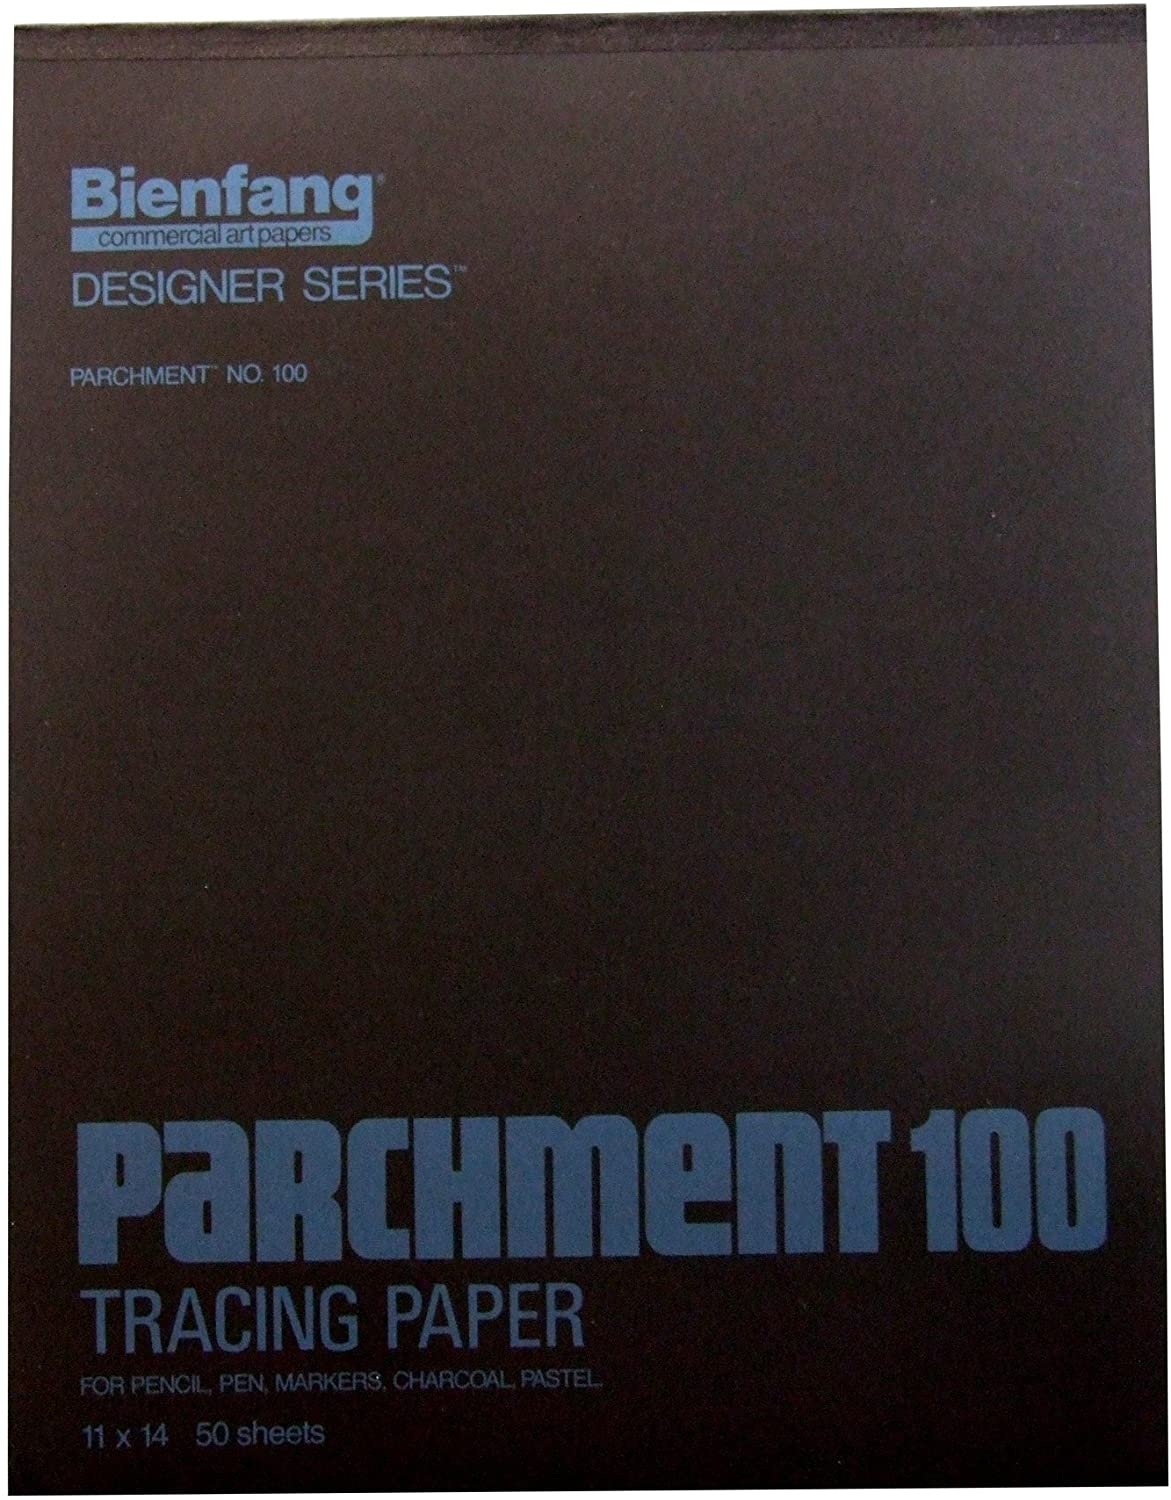 Bienfang 11 by 14-Inch Parchment 100 Pad, 50 Sheets